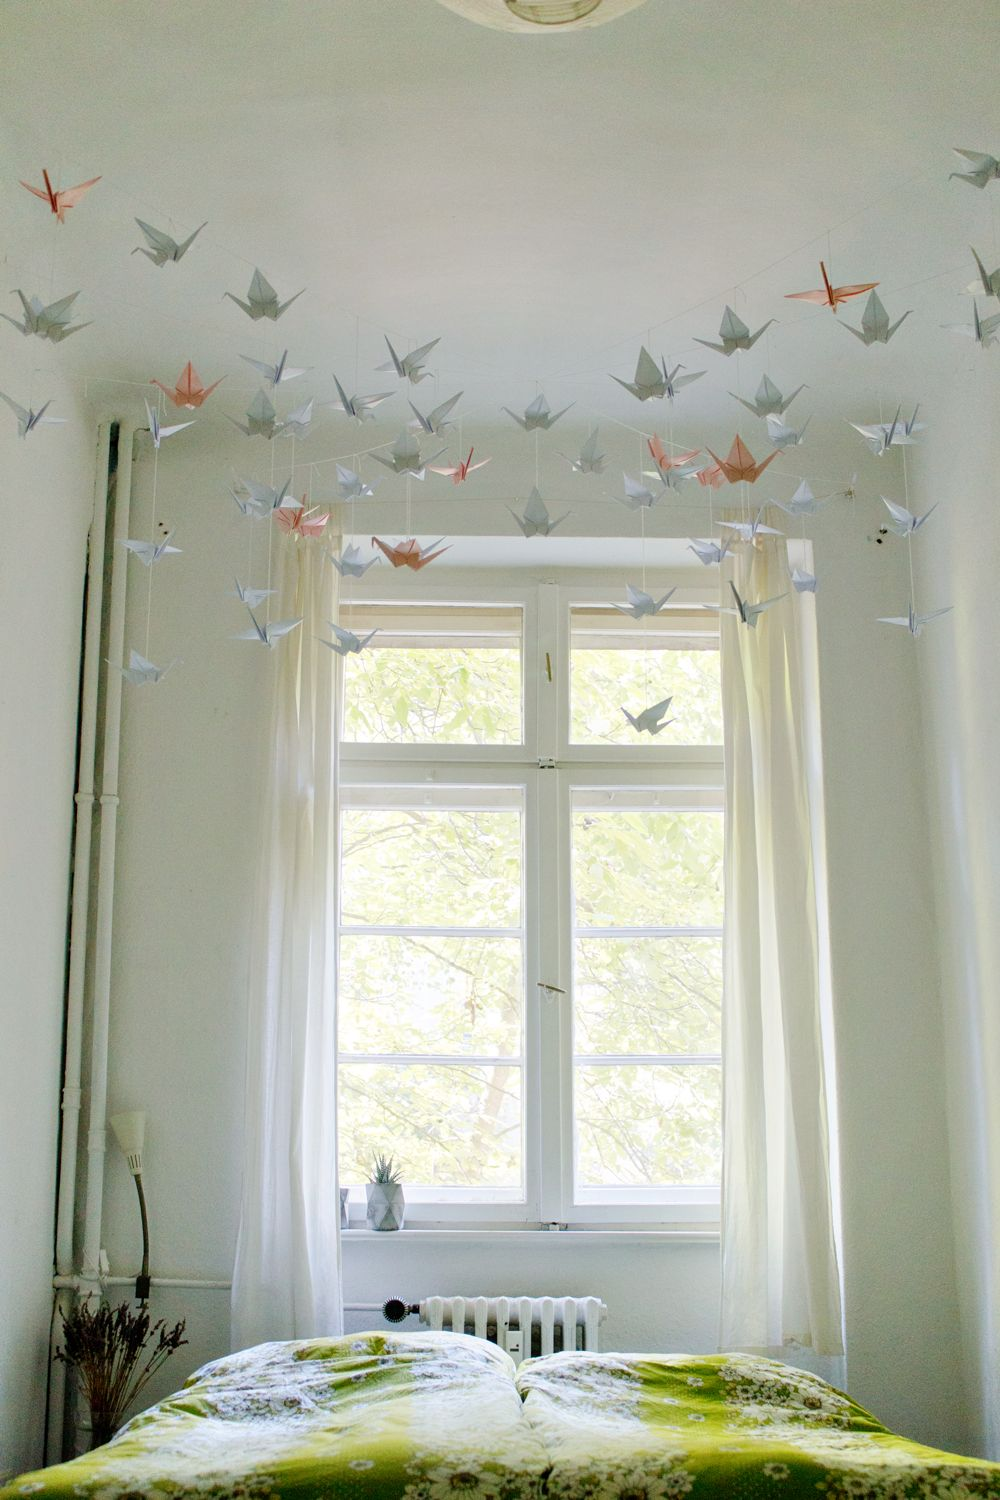 Diy Bigger On The Inside My House Shall Be Origami